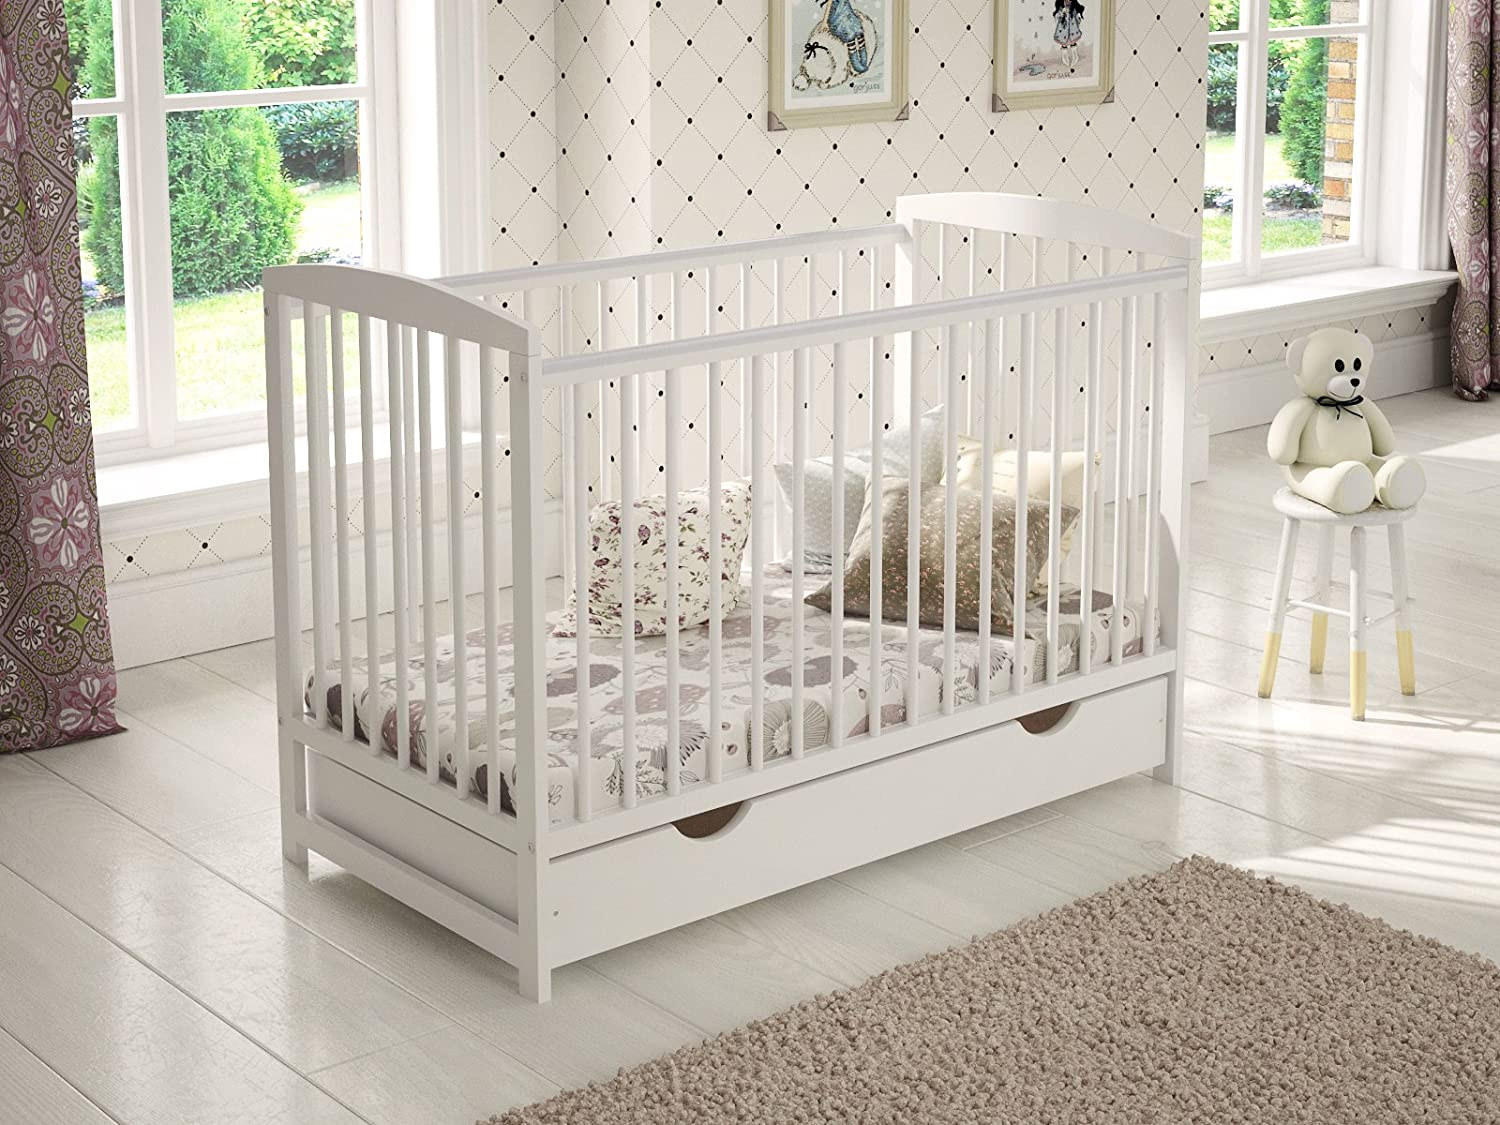 Grey Classic Wooden Baby Cot Bed with Drawer + Safety Bumper + Teething Rails loveforsleep